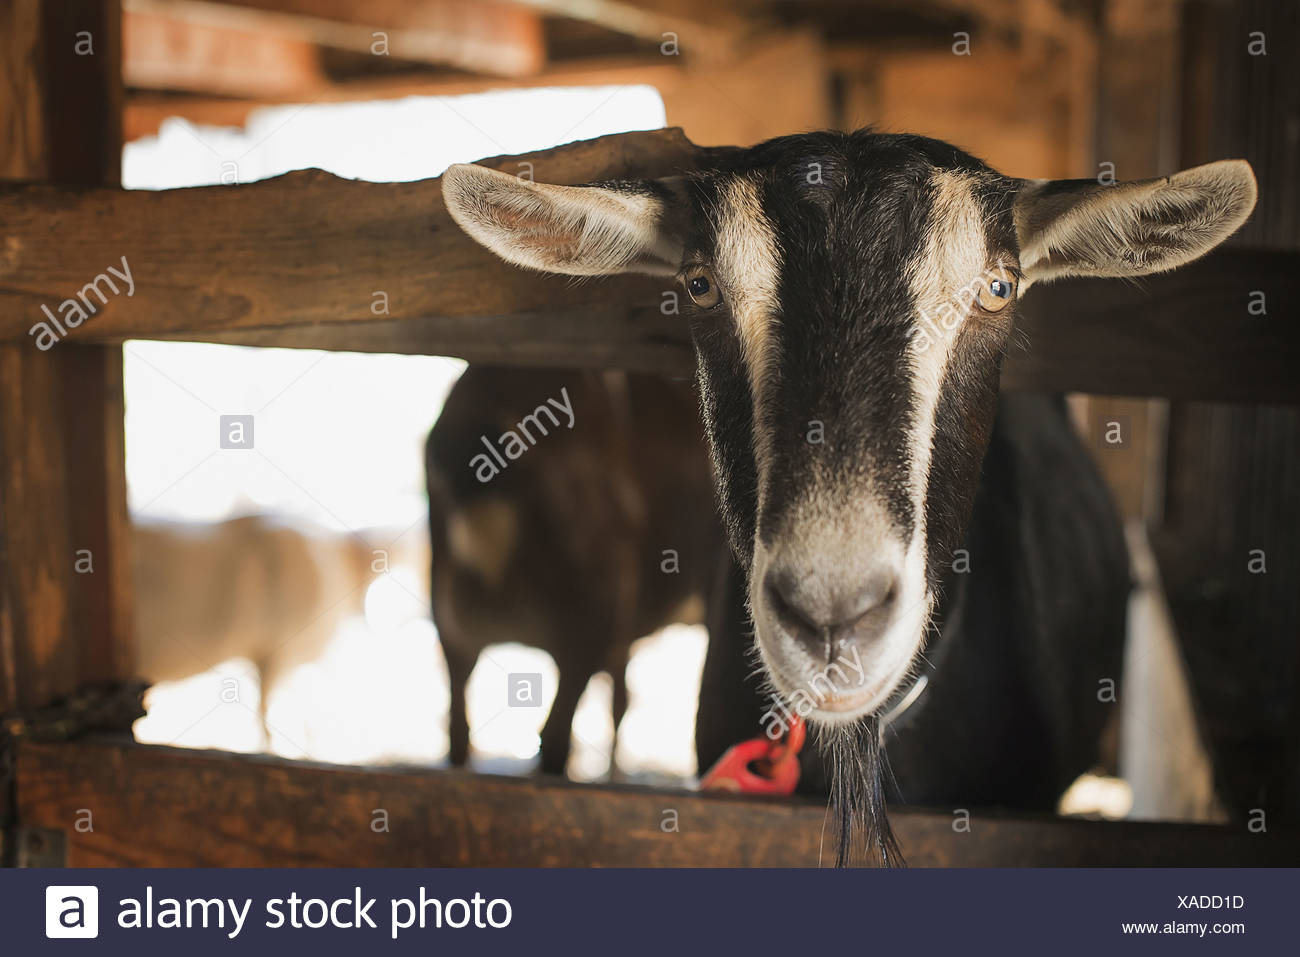 A farm animal on an organic farm A goat in a pen - Stock Image